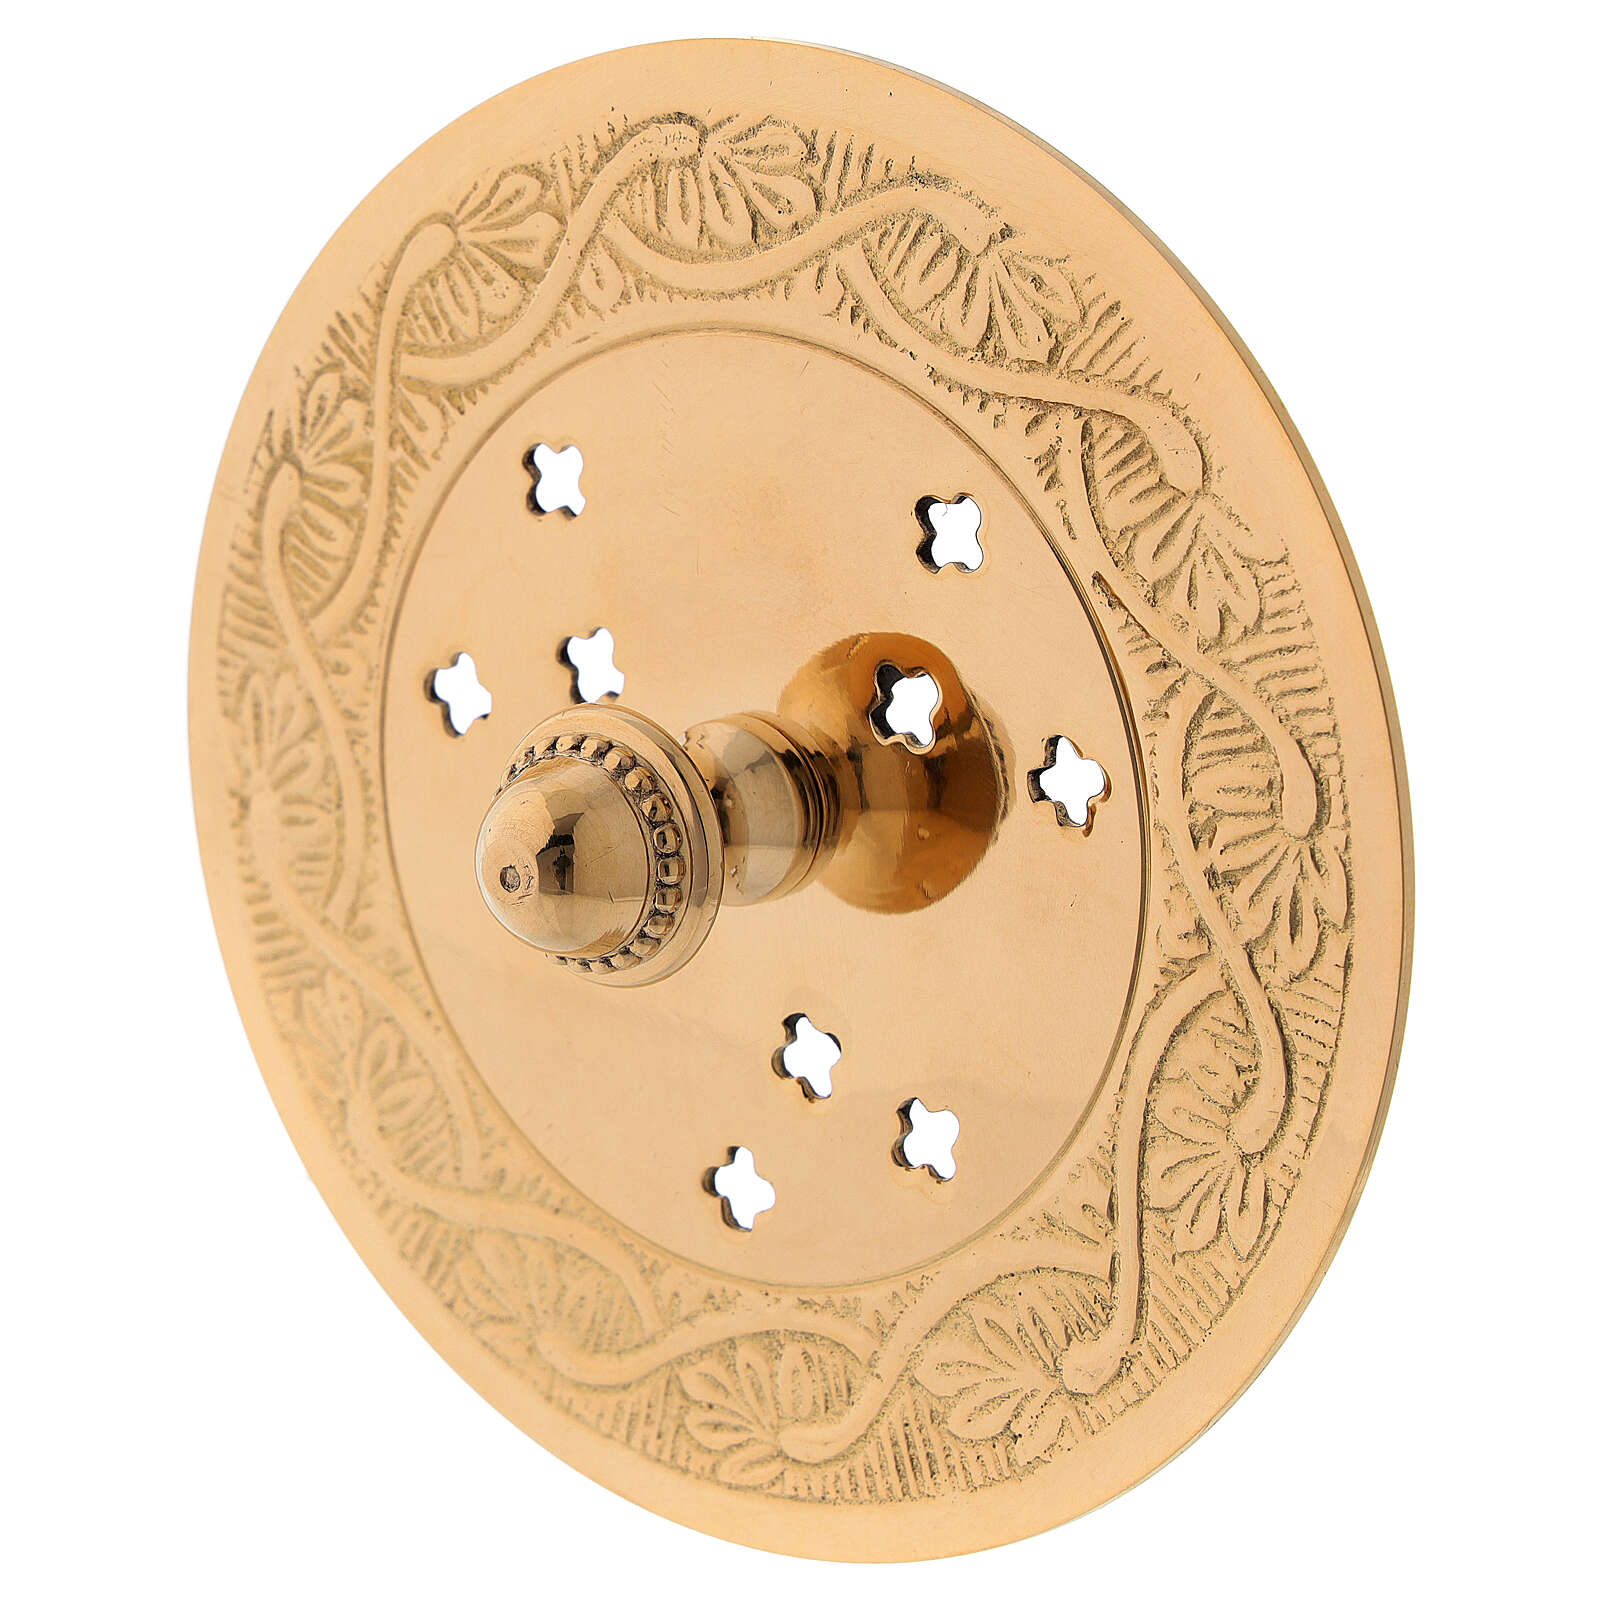 Flat incense burner in engraved gold plated brass diameter 4 in 3